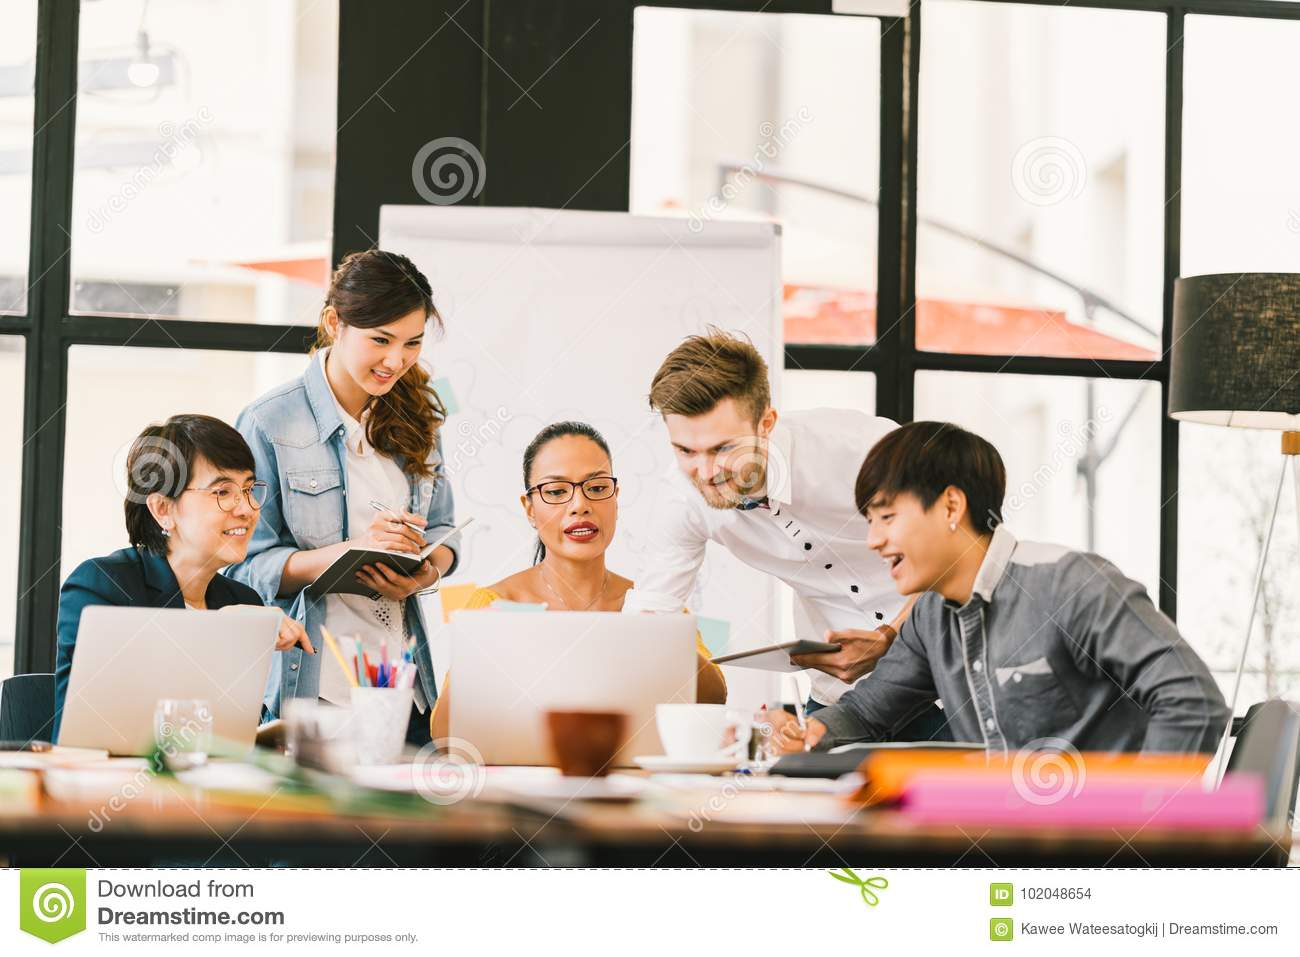 Multiethnic team discussion using laptop, digital tablet. Coworker partnership, college student meeting. Small business concept